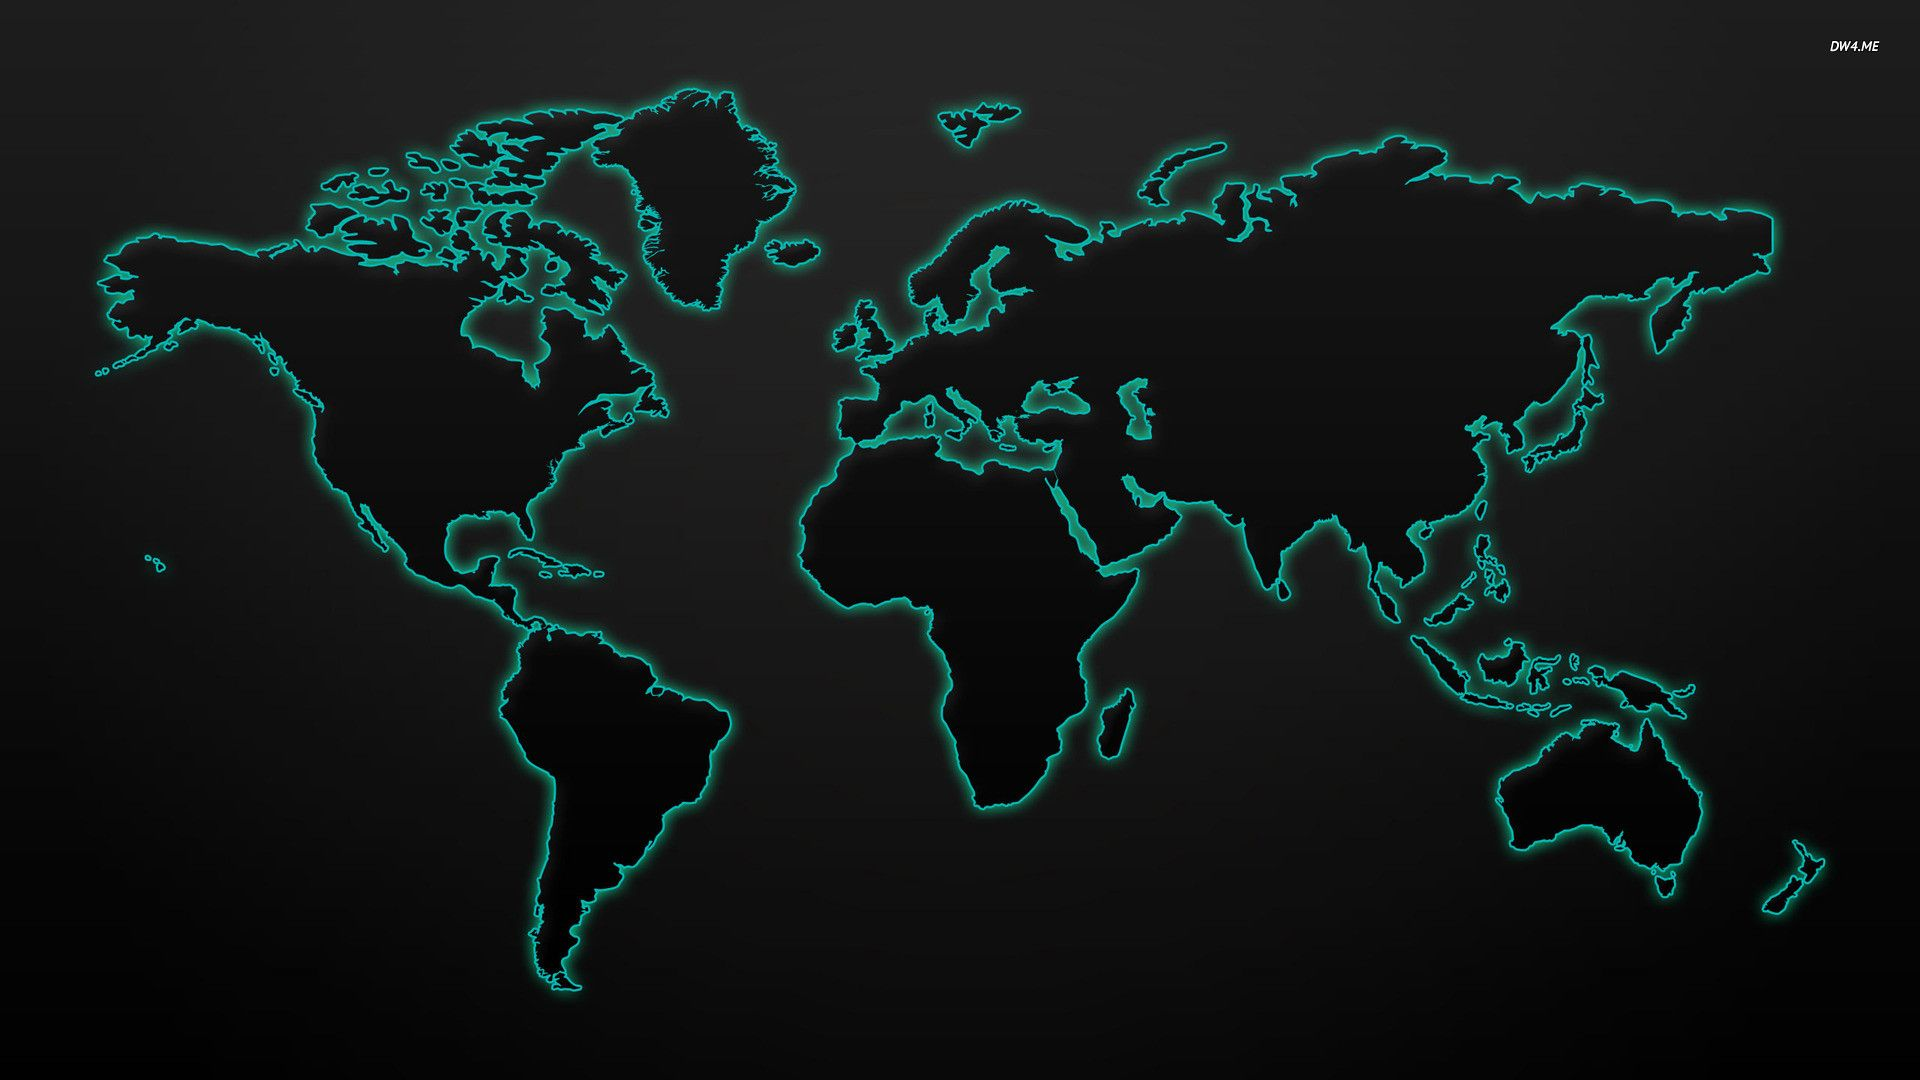 global map wallpaper - wallpapersafari